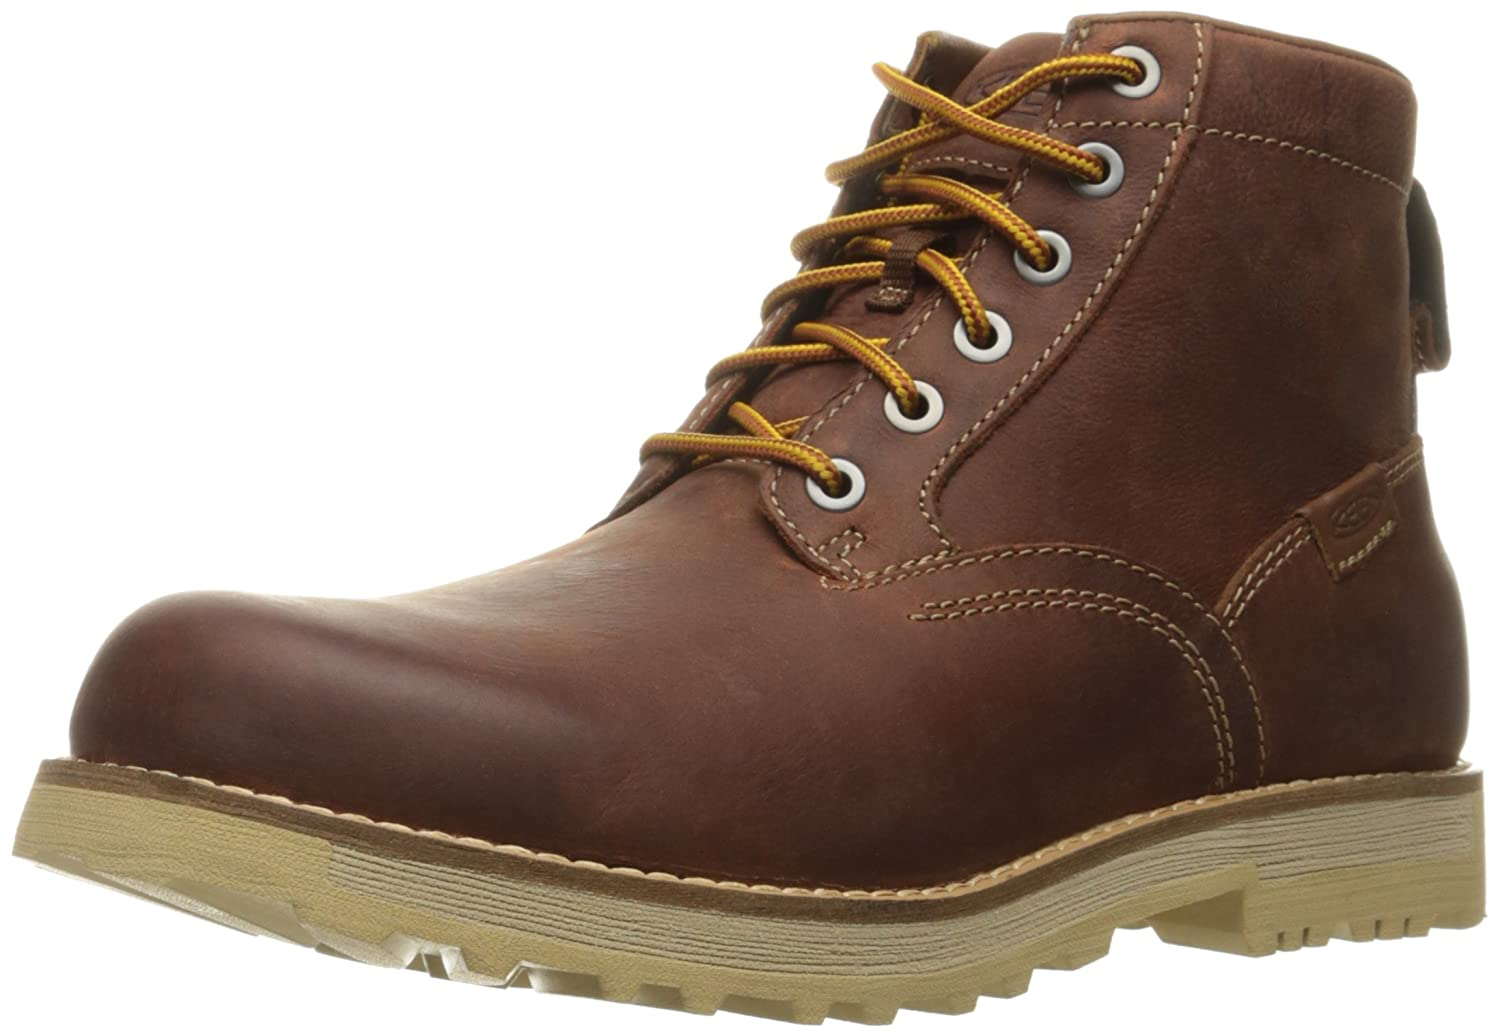 KEEN Men's The 59 Boot KEEN Men's The 59 Boot Keen - US Shoes The 59-M